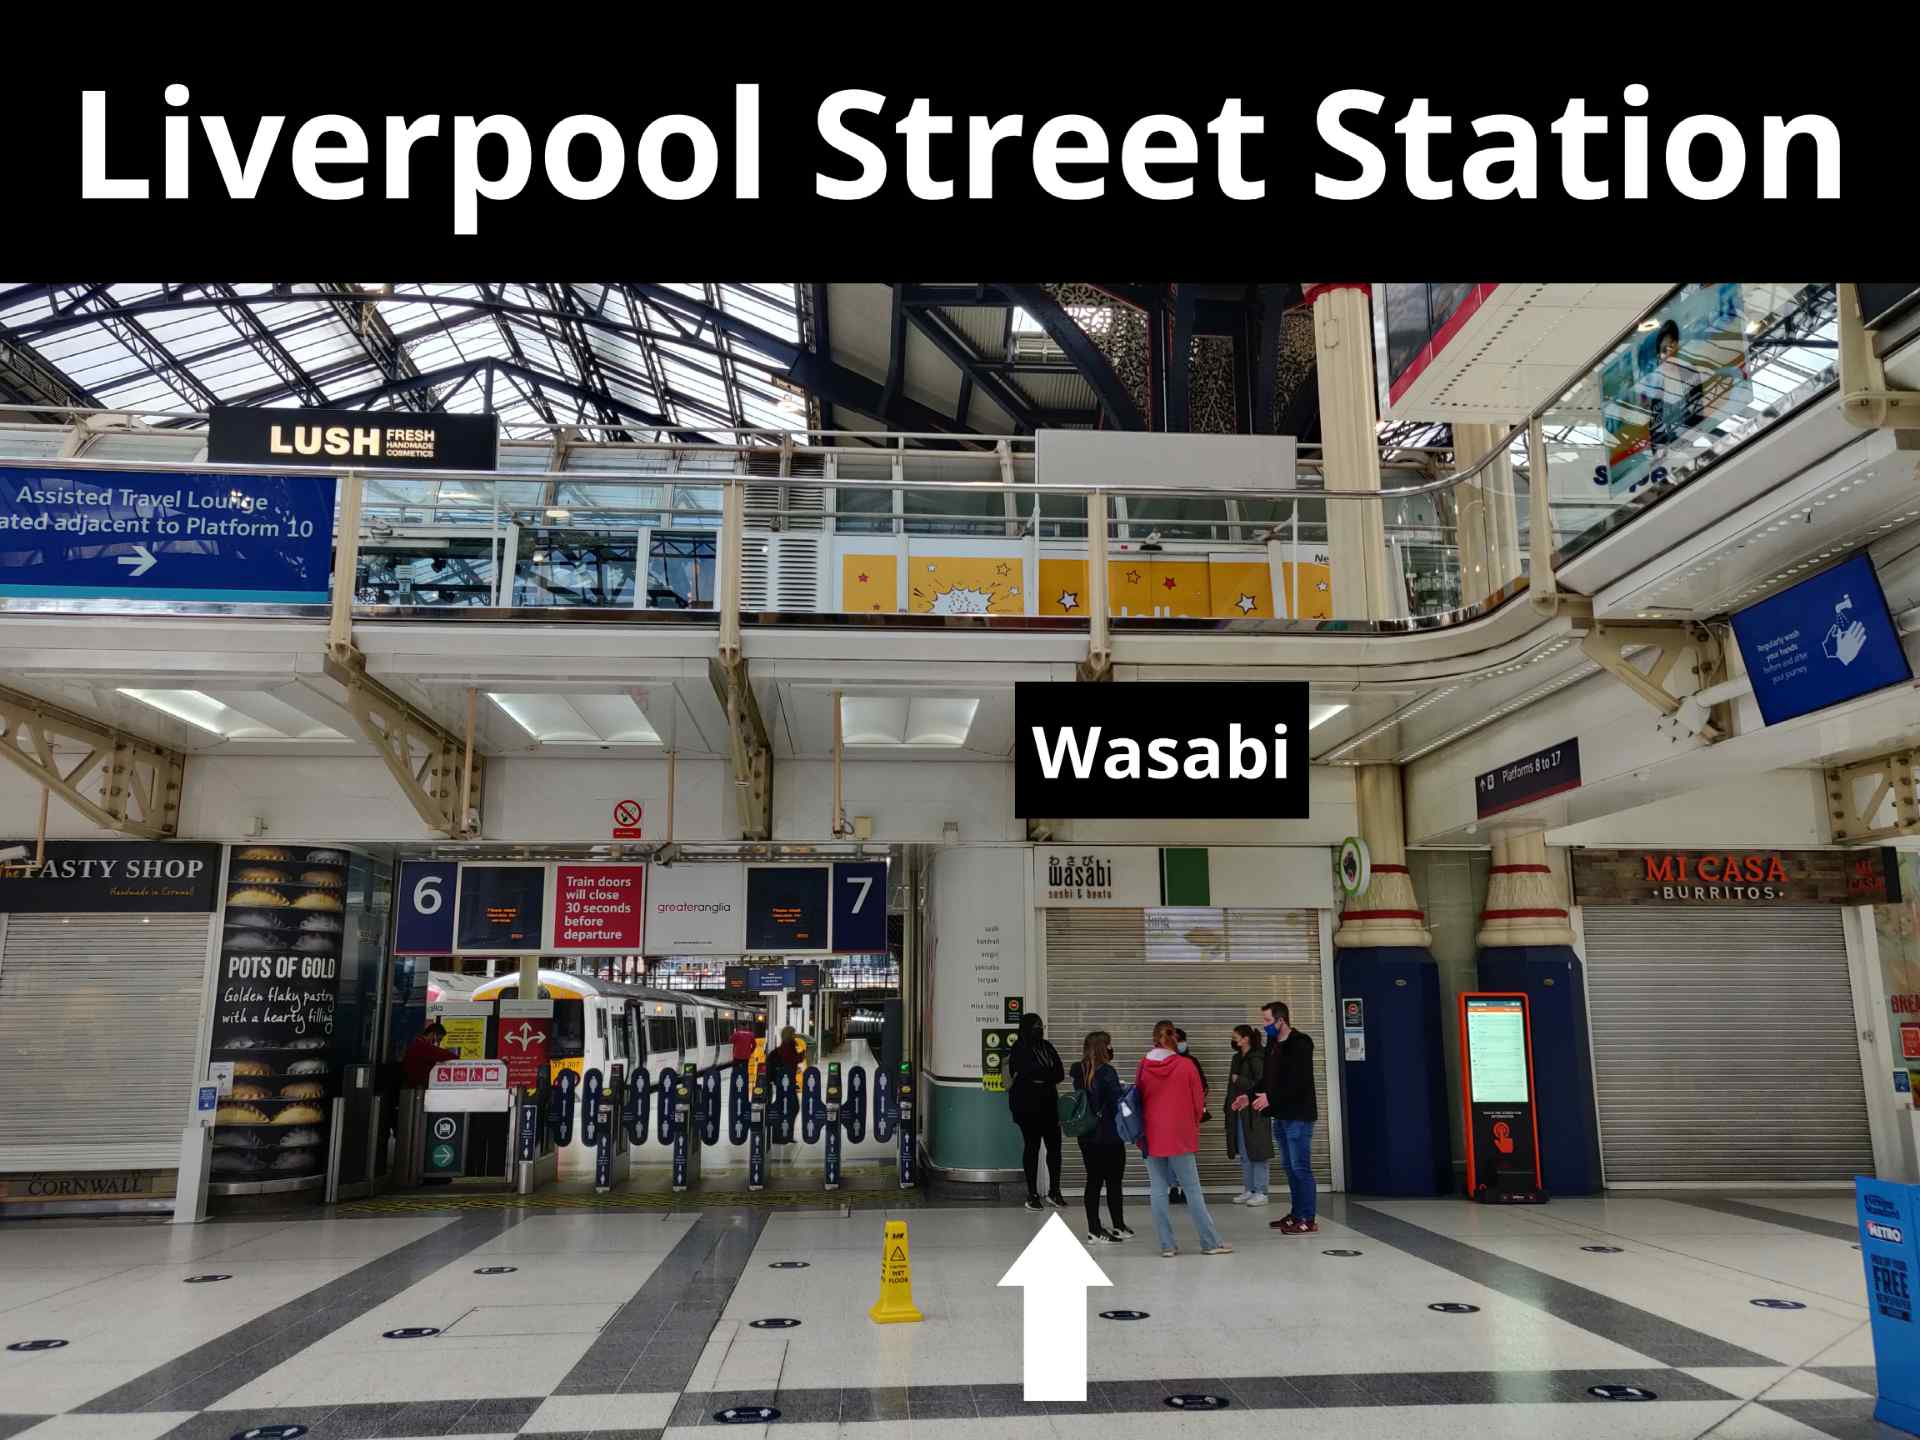 Liverpool Street Station meeting point